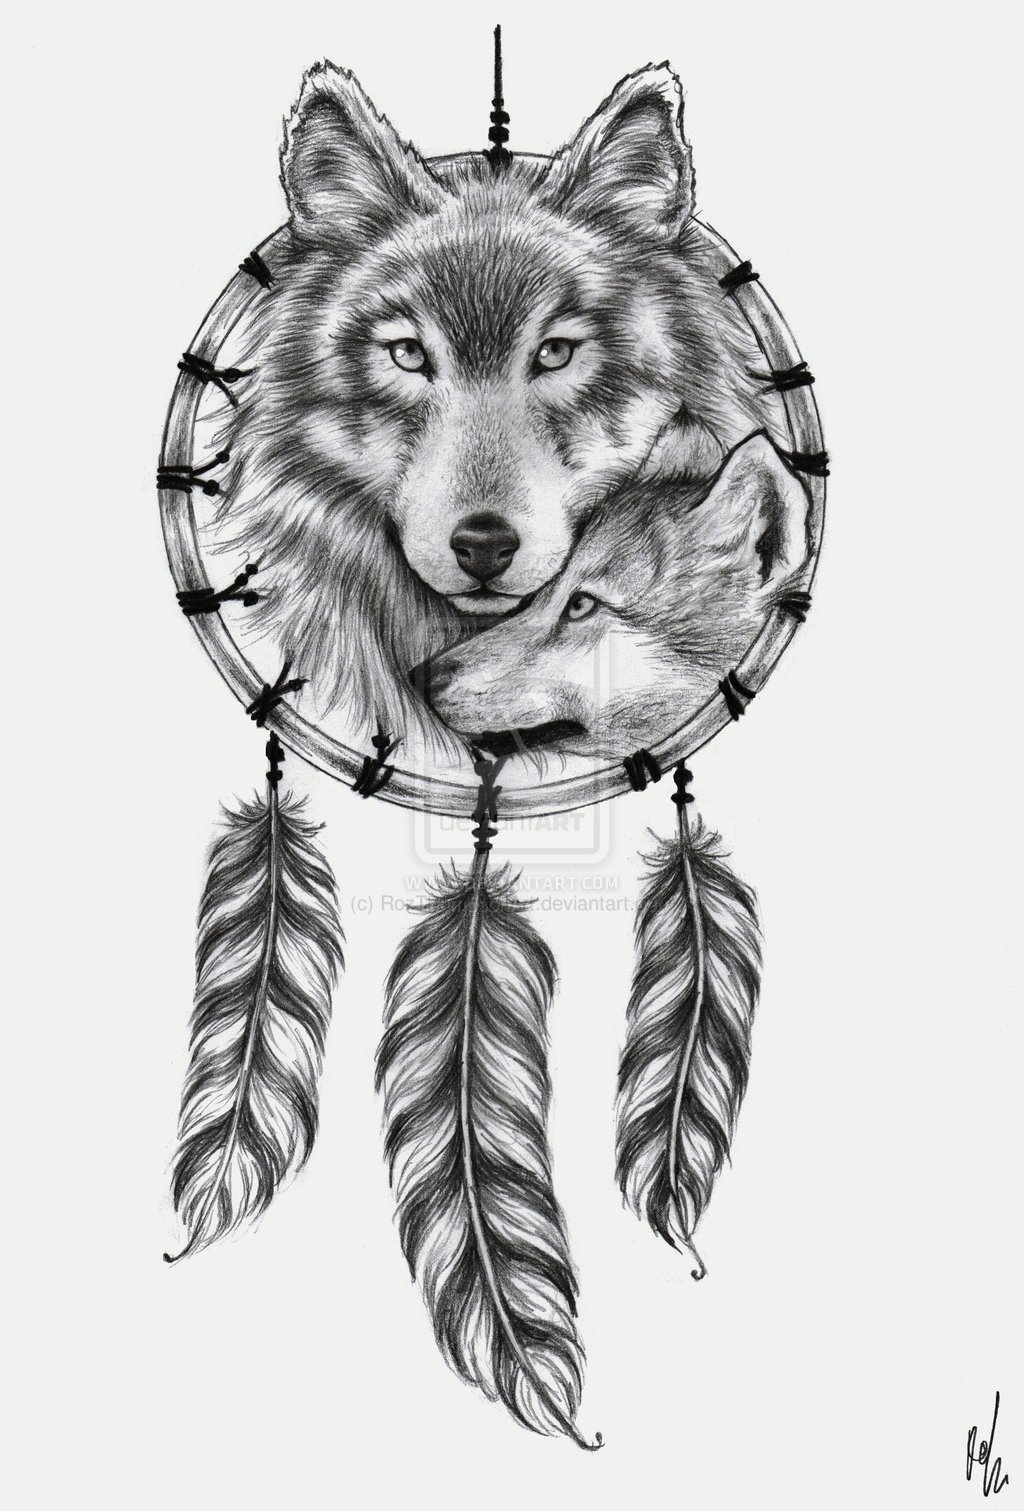 Wolf Dreamcatcher Drawing : dreamcatcher, drawing, Dream, Catcher, Drawing, Anime, Mania